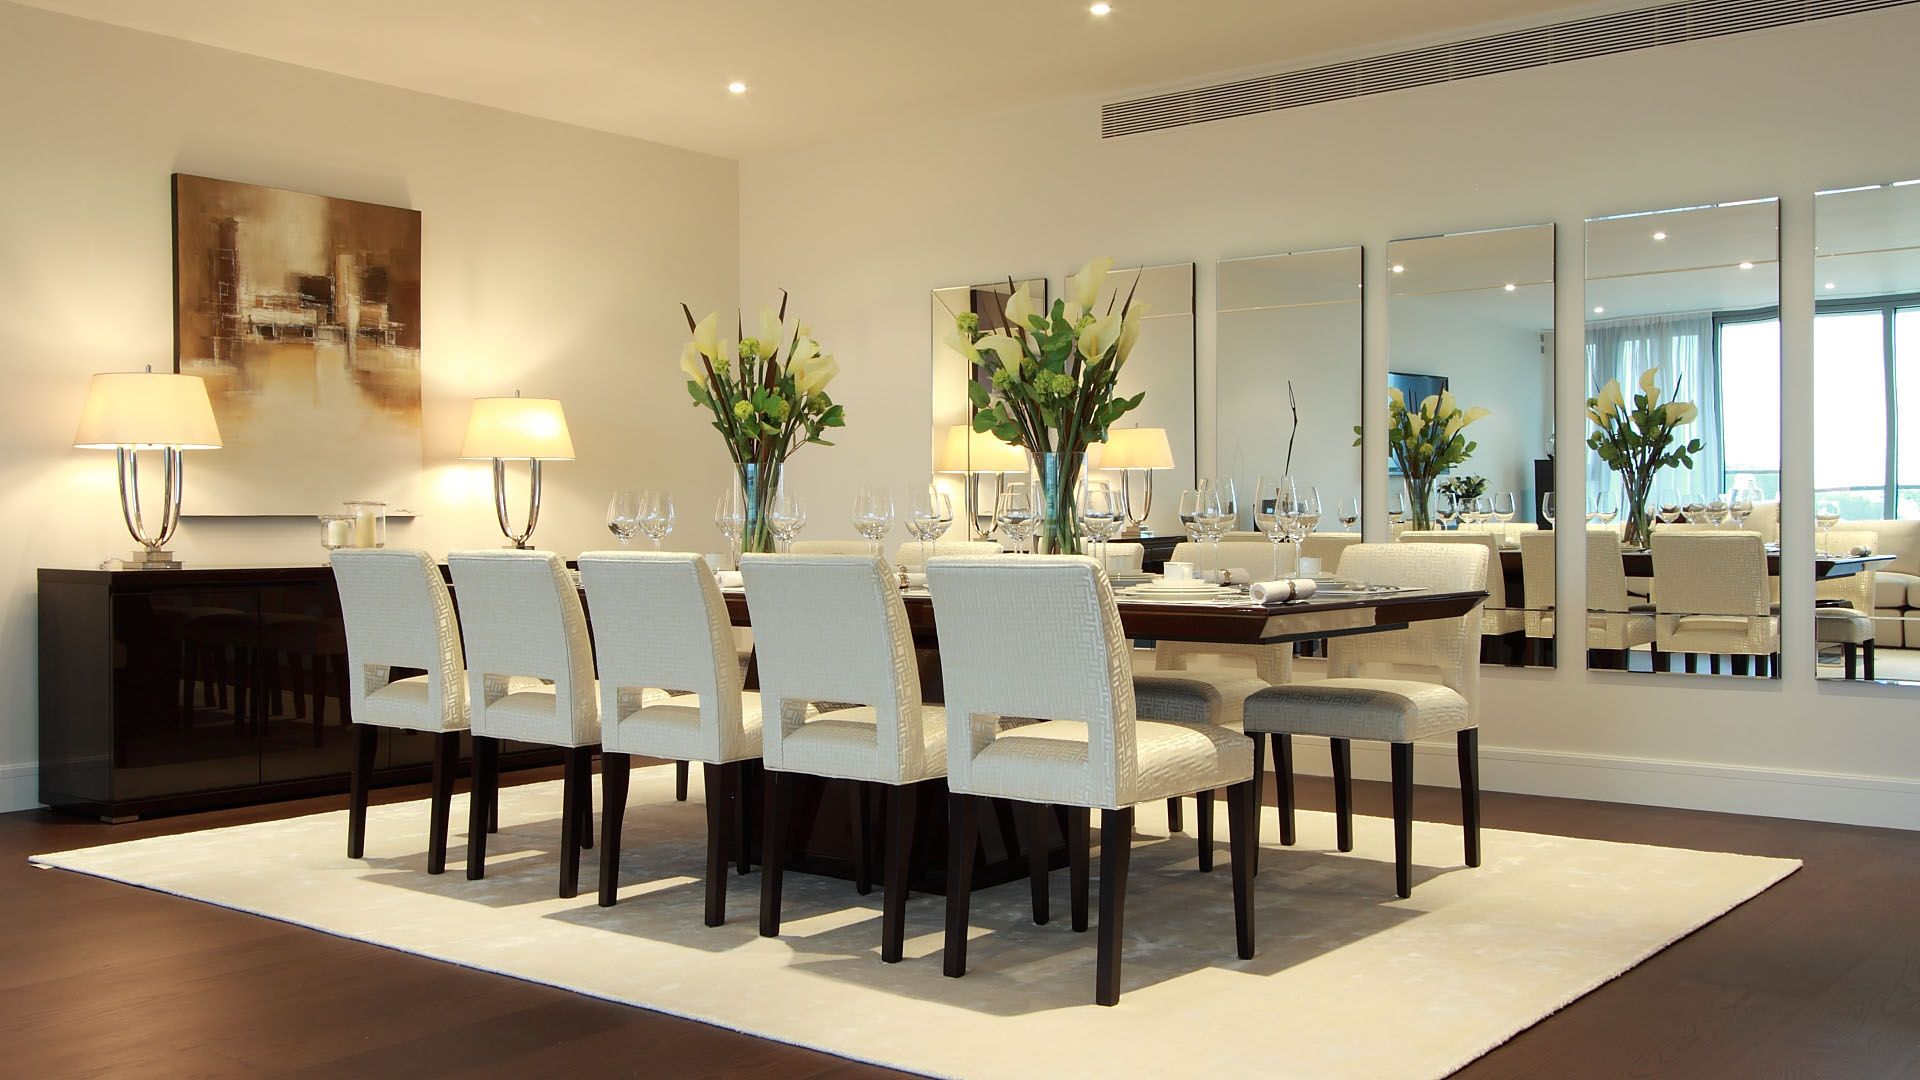 Show homes highlights from emblem furniture showing some of our show home project information and photo gallery for the knightsbridge apartments an emblem furniture interior designed show house based in knightsbridge dzzzfo